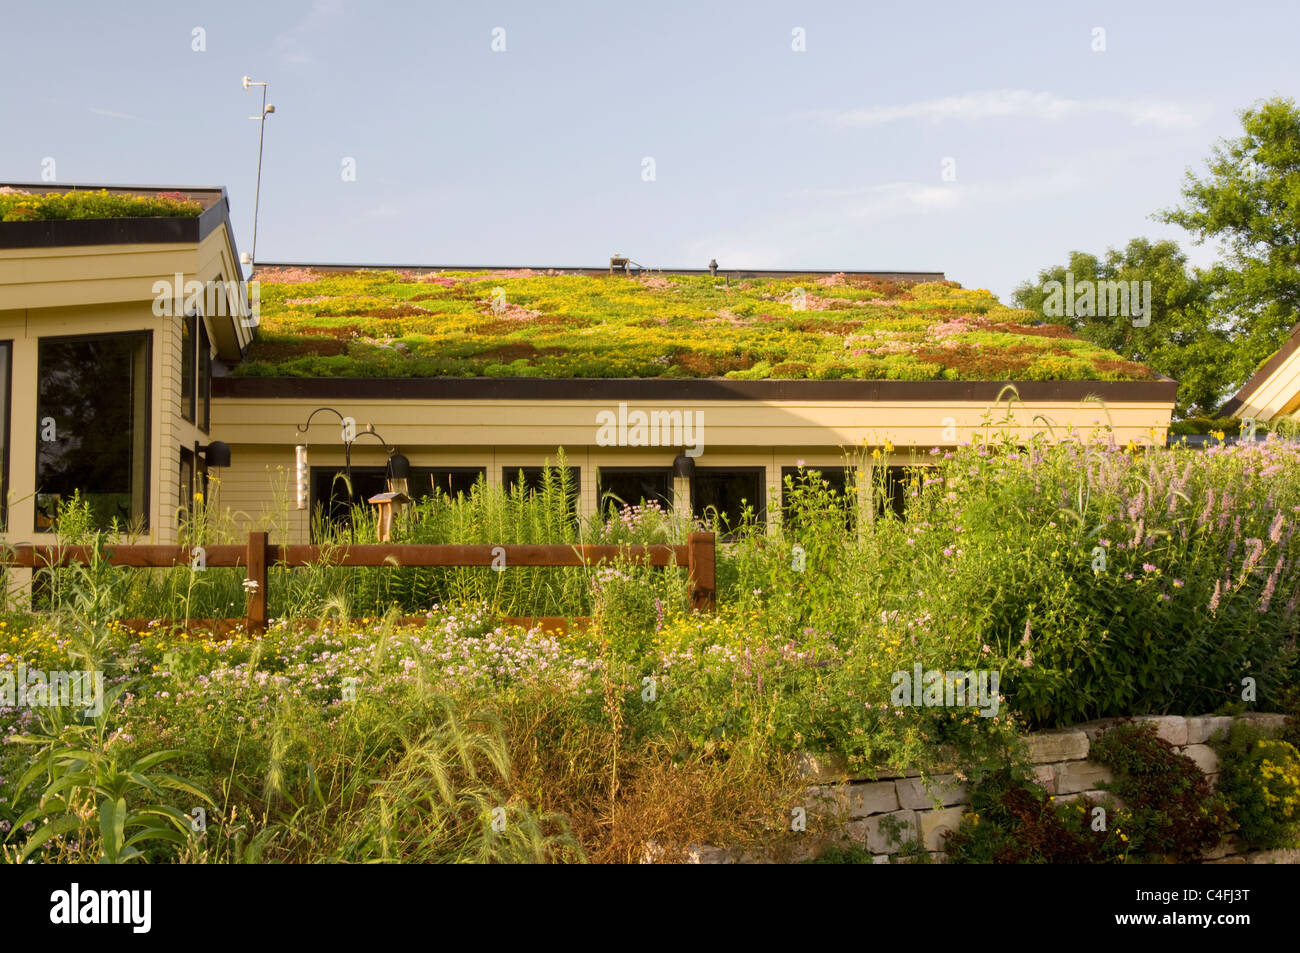 Lebanon Hills Visitor Center In Eagan Minnesota Showing Vegetation On Green  Roof And Native Plant Gardens In Foreground